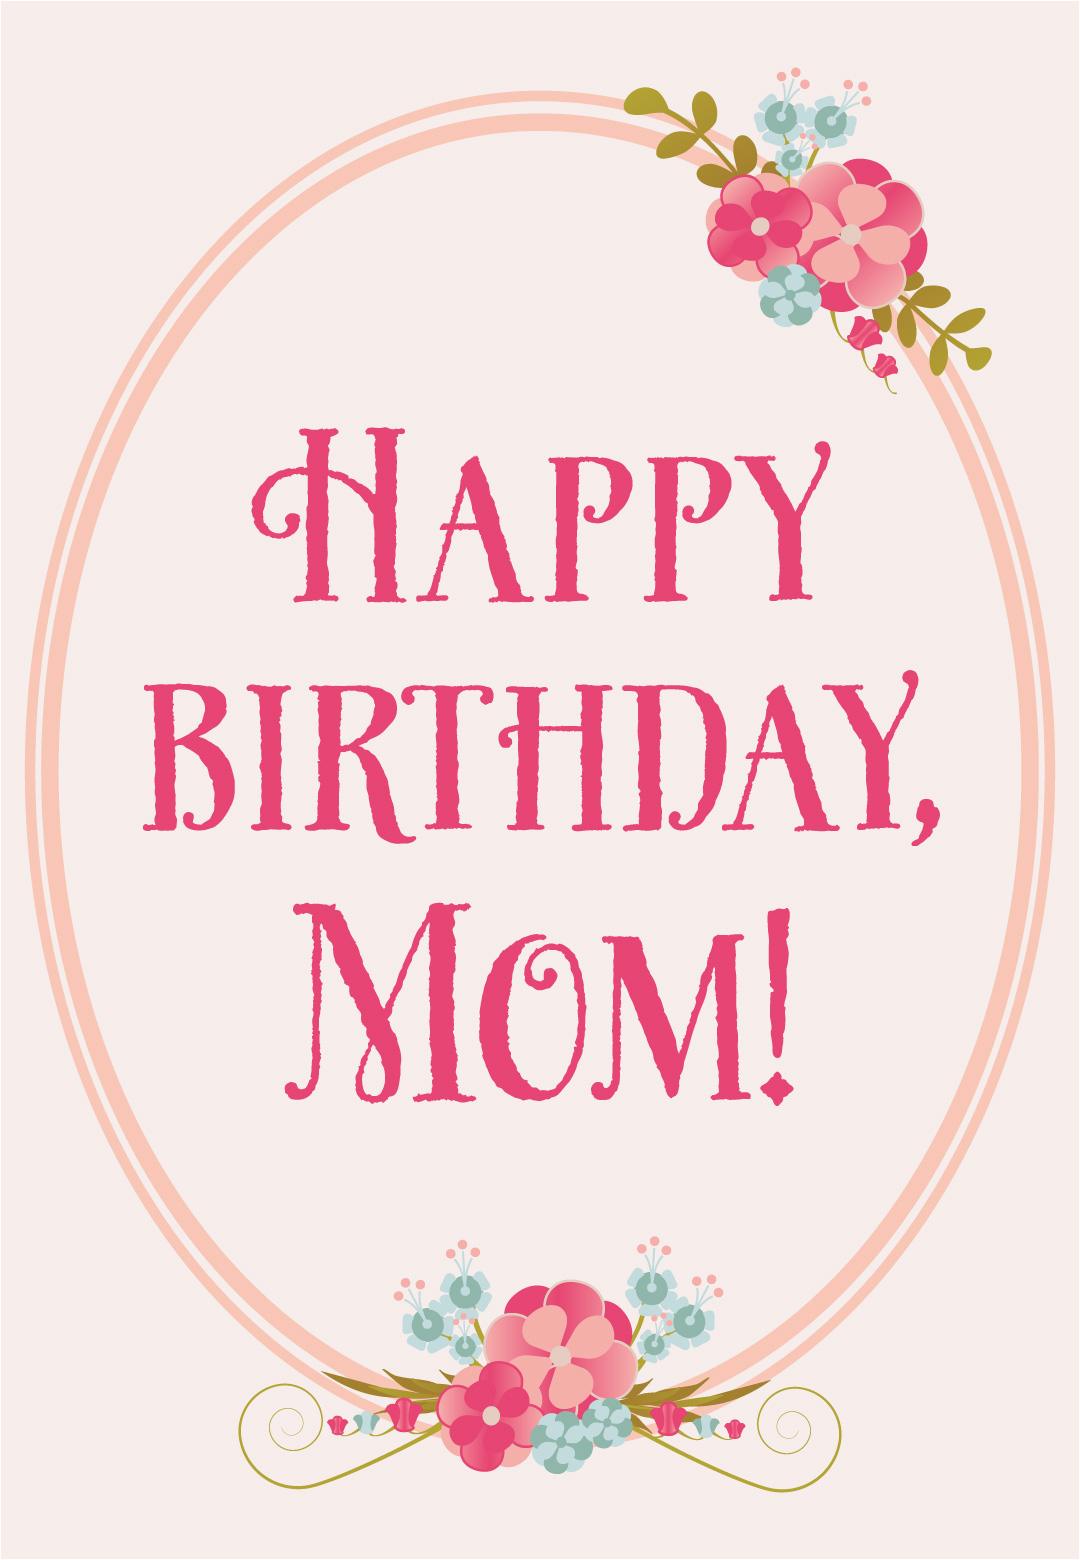 Online Birthday Cards For Mom Floral Free Card Greetings